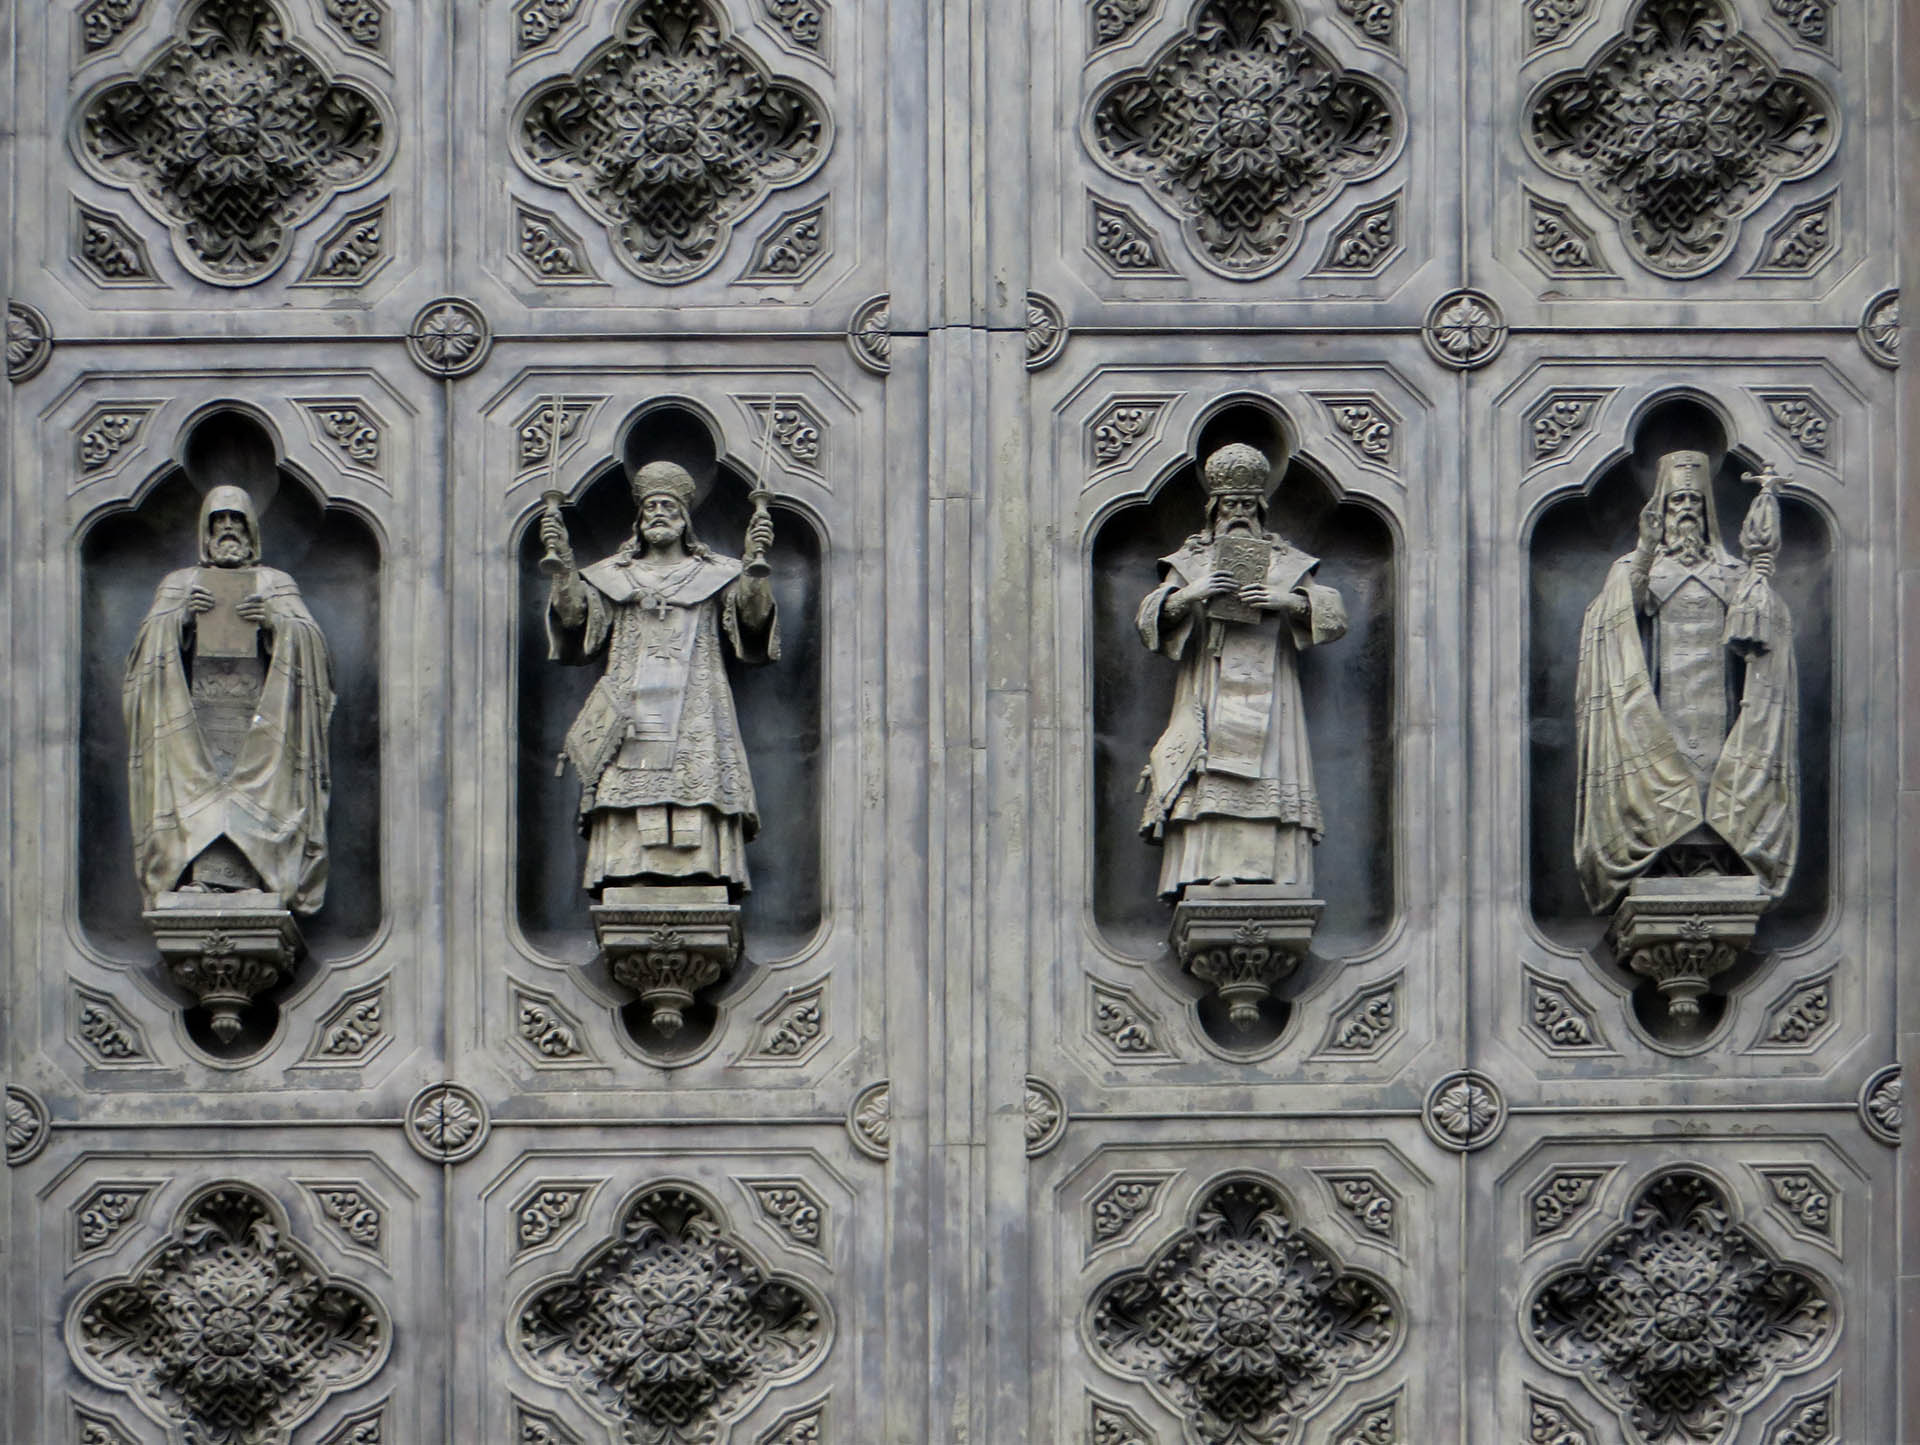 Doors of the Cathedral.